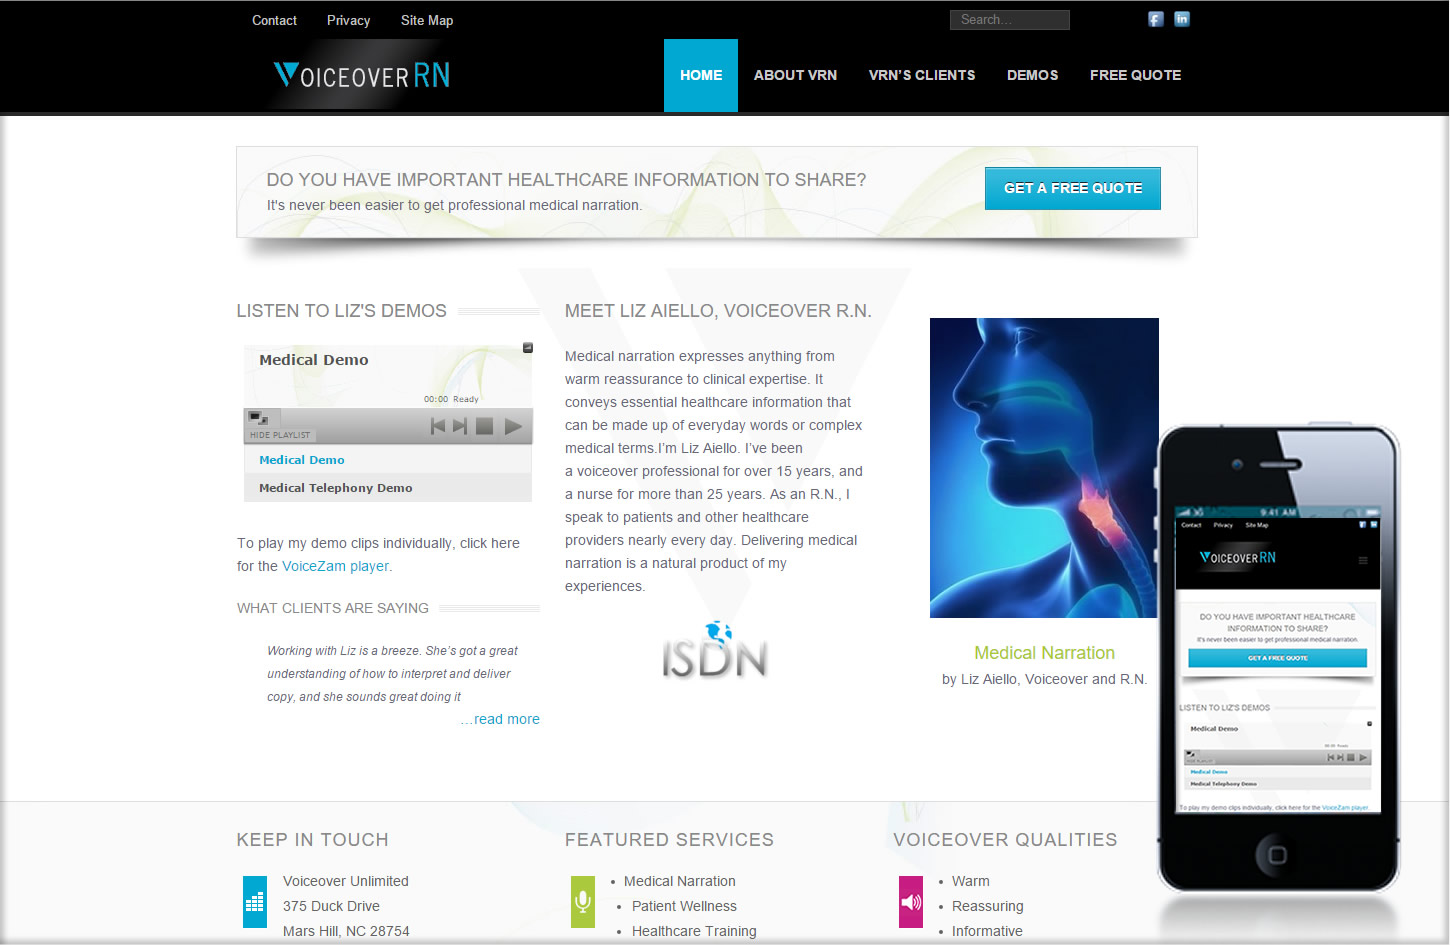 VORN_website